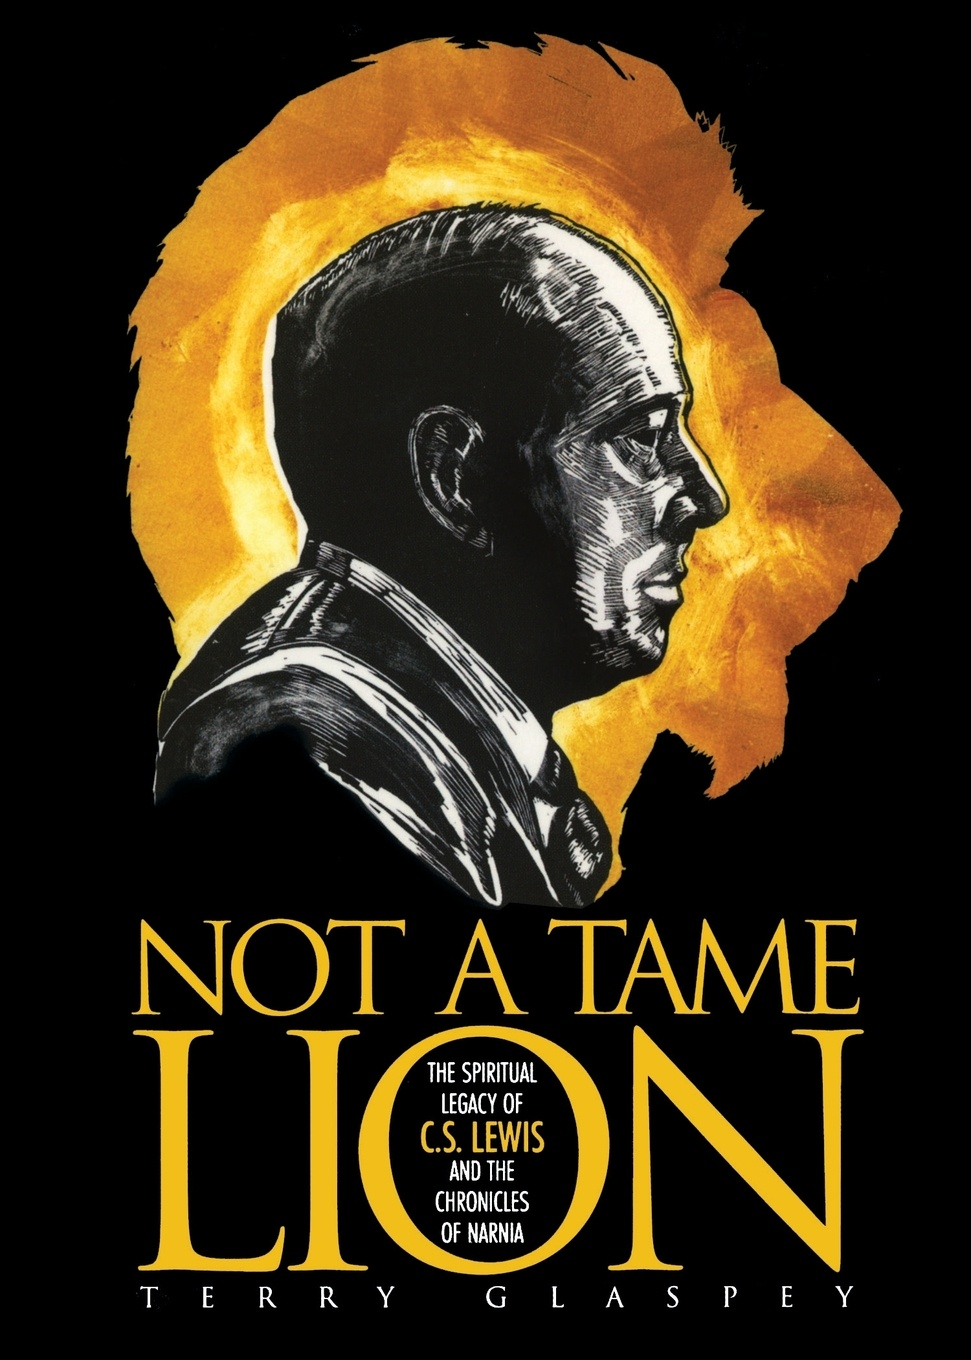 цена Terry W Glaspey Not a Tame Lion. The Spiritual Legacy of C. S. Lewis and the Chronicles of Narnia онлайн в 2017 году